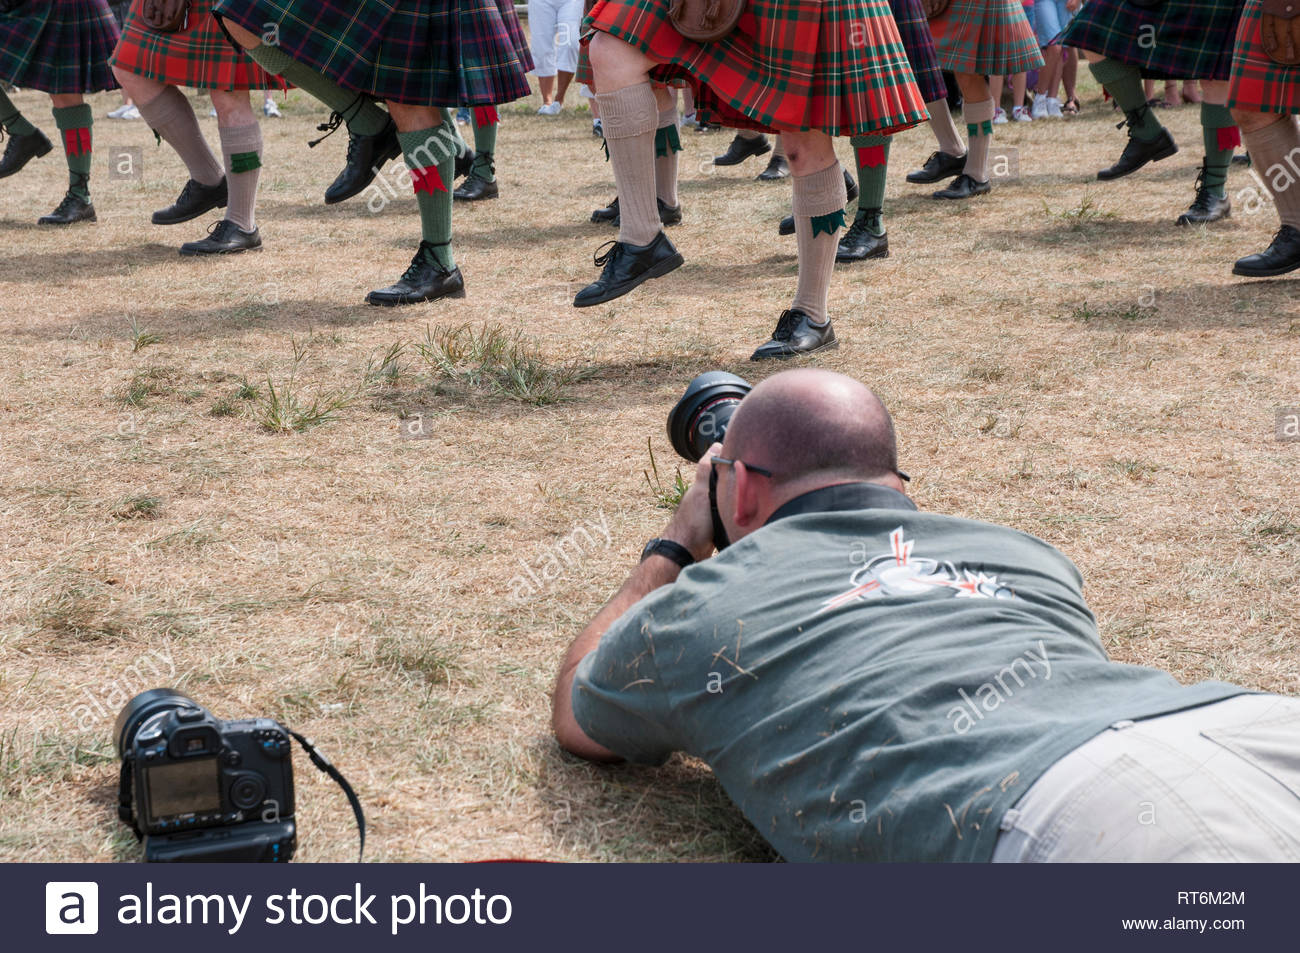 https://c7.alamy.com/comp/RT6M2M/photographer-gets-a-low-angle-shot-of-marching-bagpipers-legs-and-kilt-hems-RT6M2M.jpg